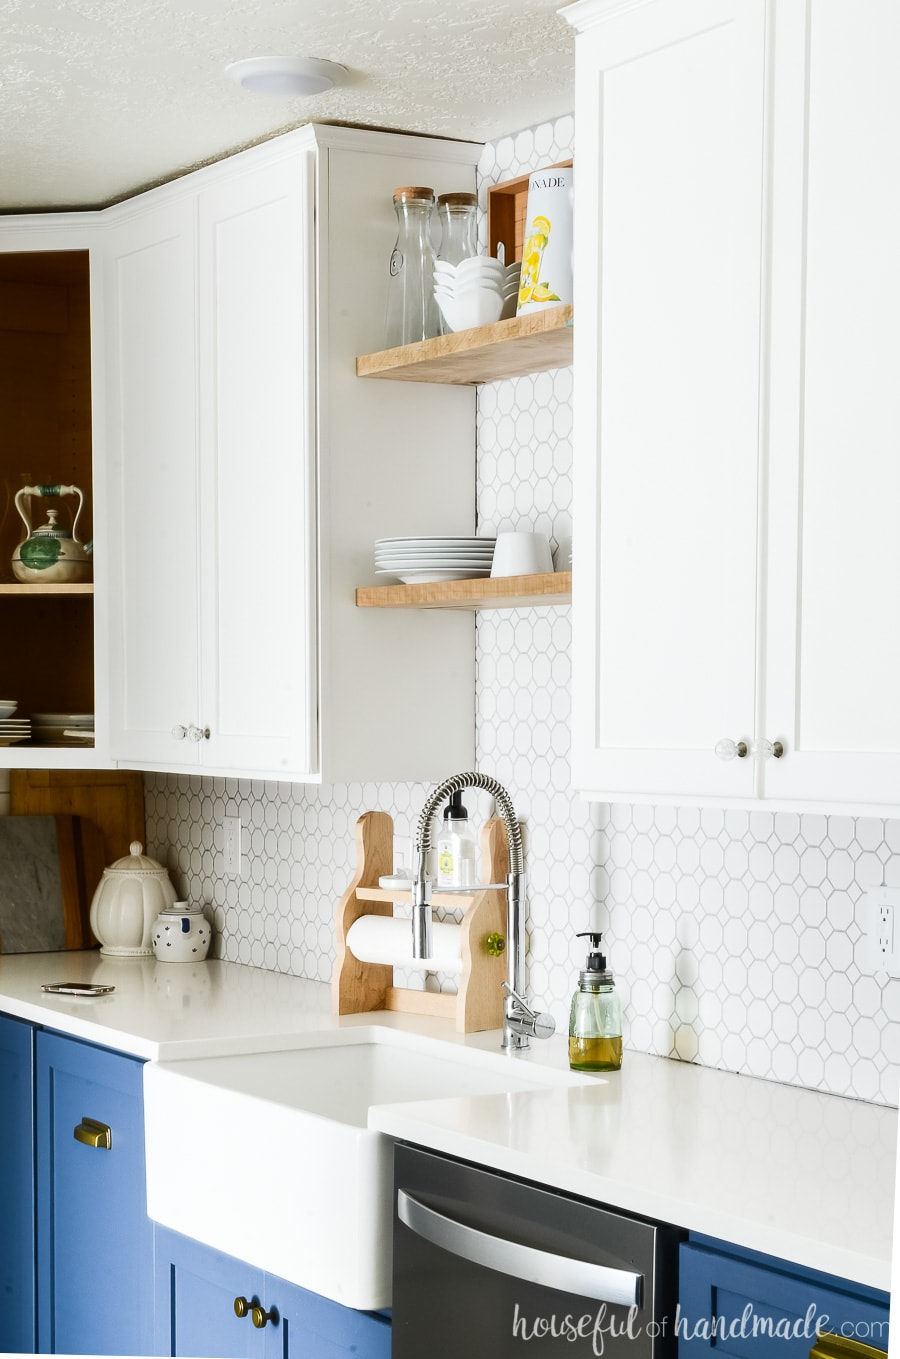 Close up of the white upper cabinets in the two tone kitchen. Farmhouse sink with open shelving above it.